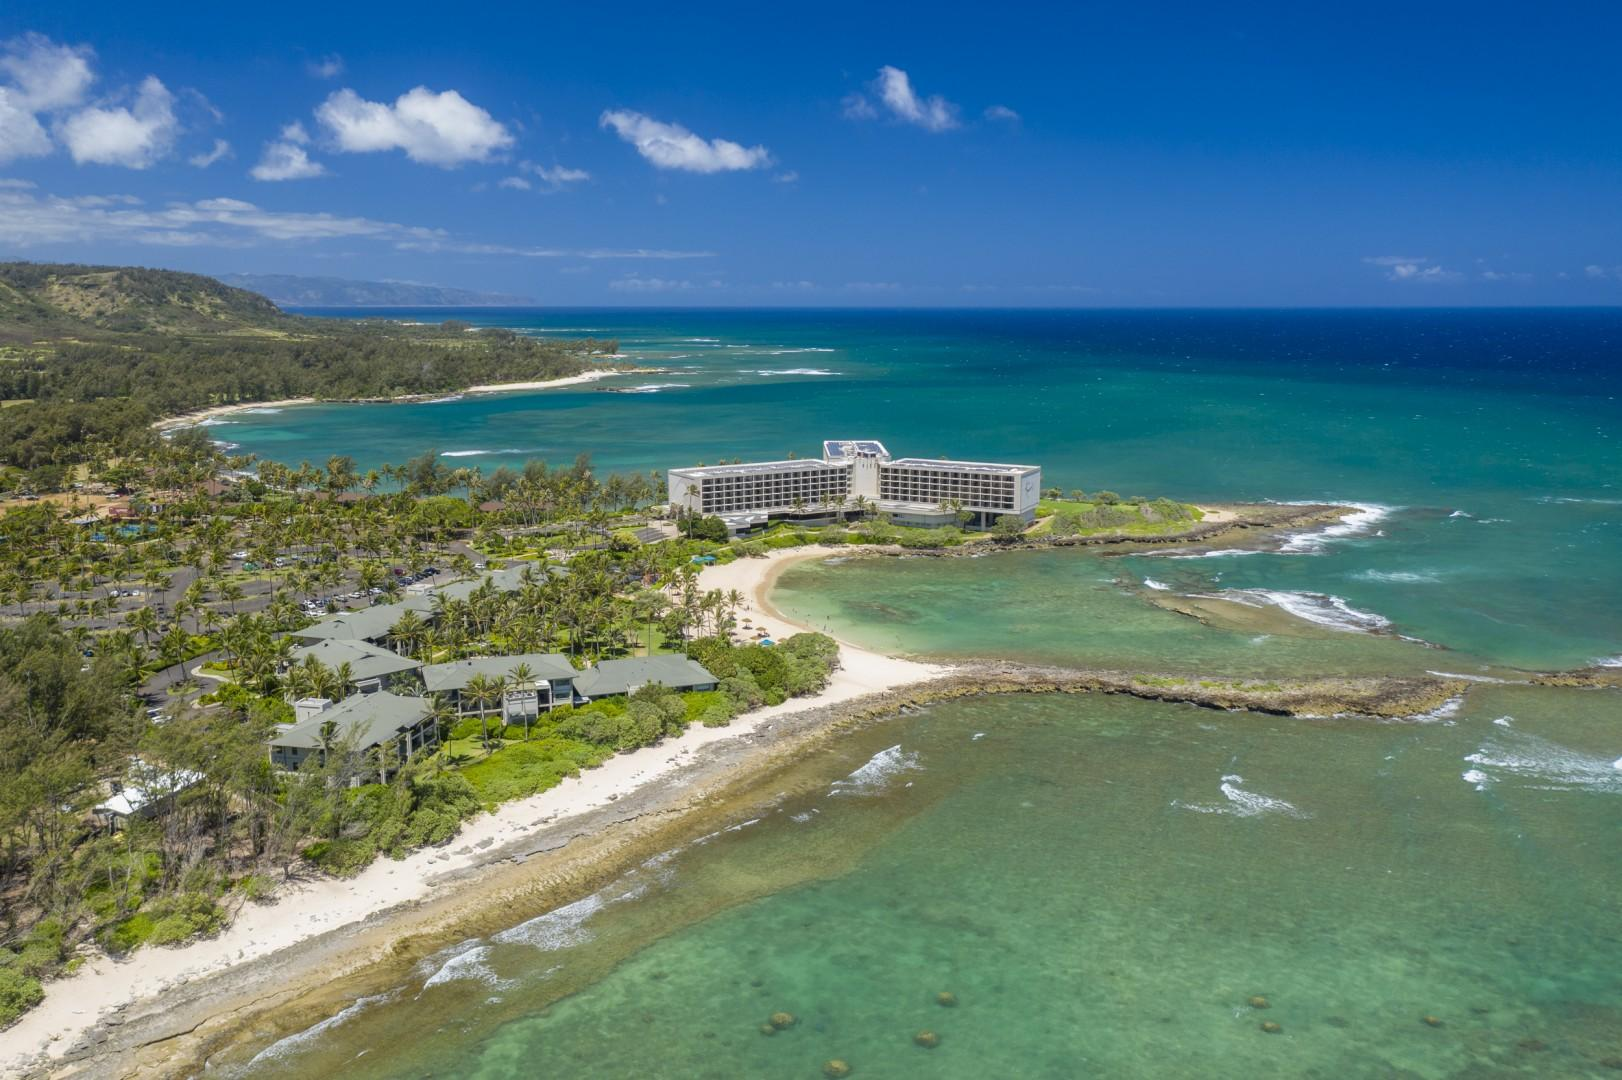 Ocean Villas and Turtle Bay Resort